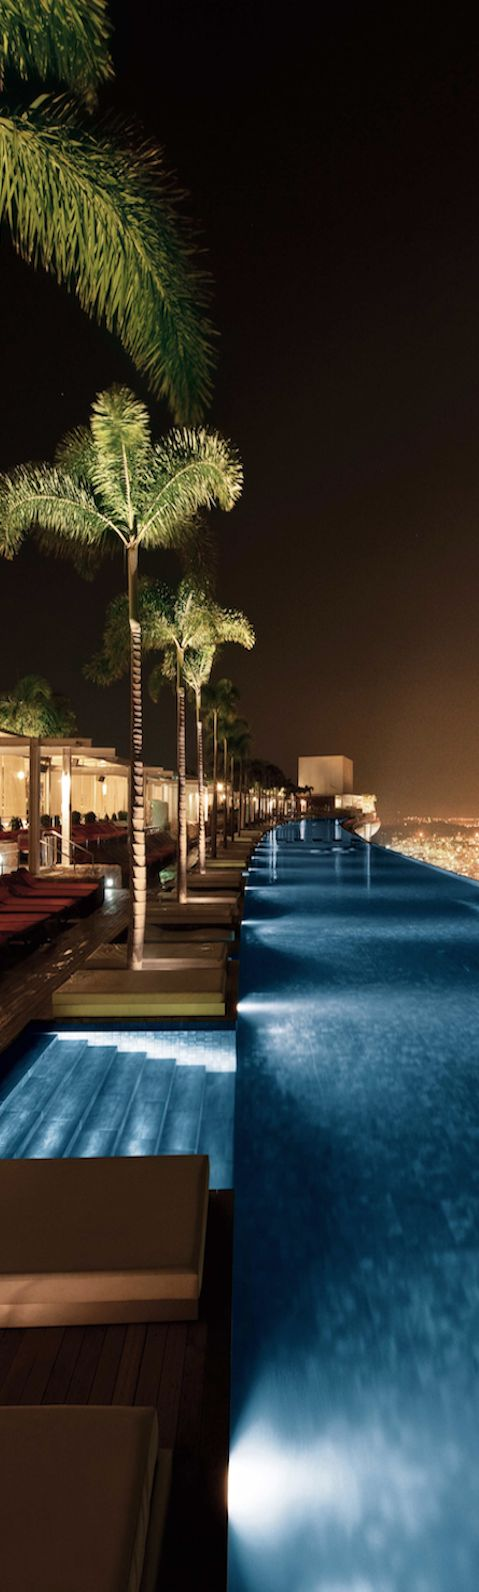 Rooftop Pool, Marina Bay Sands Resort, Singapore - The Most Barely Noticeable Pools all Over the World, The Infinity pool at Marina Bay Sands resort in Singapore